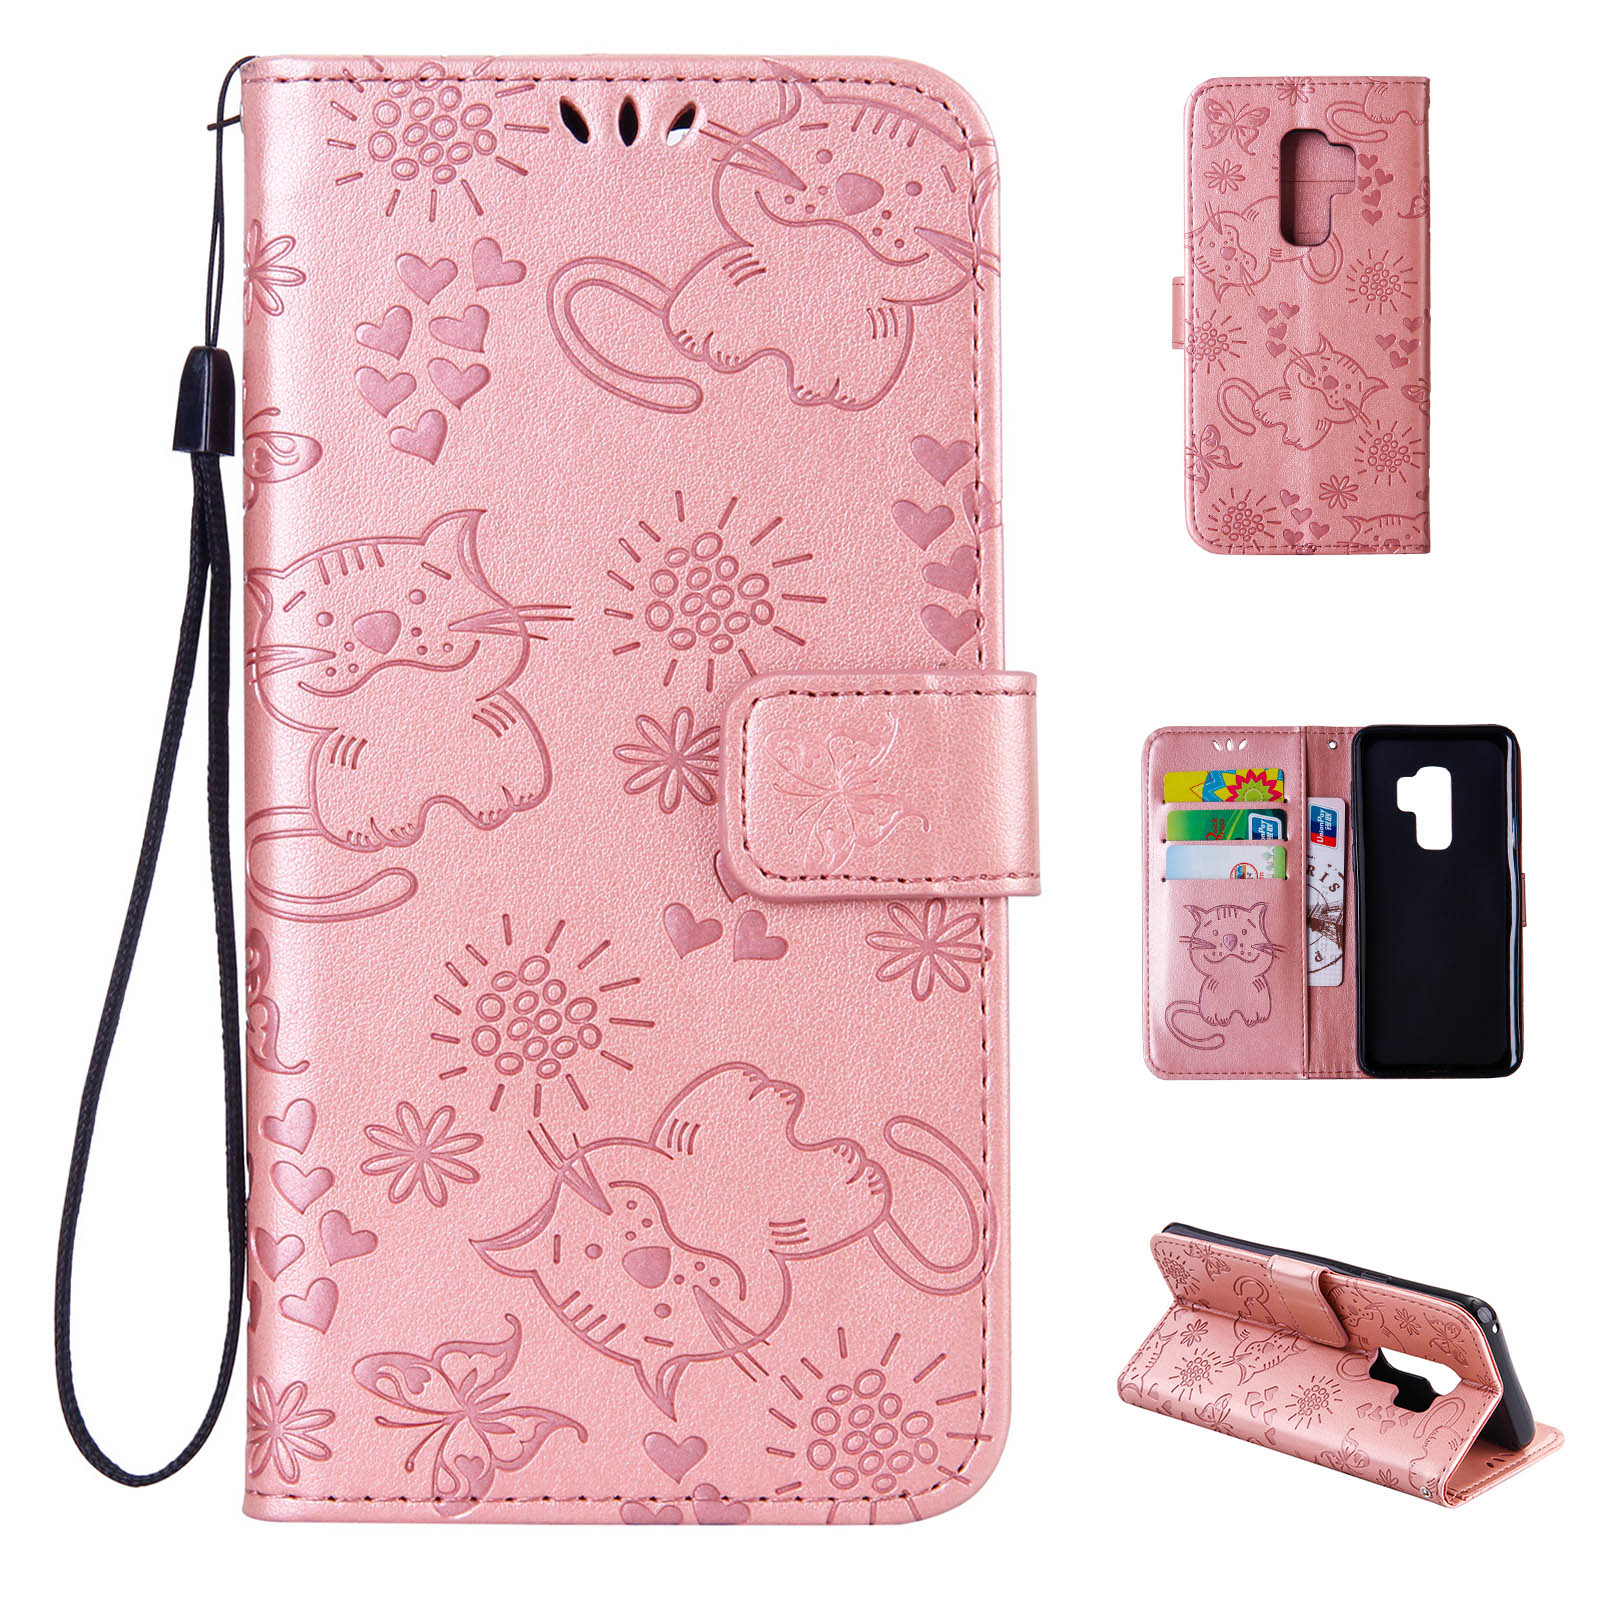 Galaxy S9 Plus/ S9+Case Girls, Allytech PU Leather Butterfly Cat Ultra Slim Folio Flip Stand Magnetic Shock-Absorbing Credit Cards Holder Wallet Case Cover for Samsung Galaxy S9 Plus, Rosegold